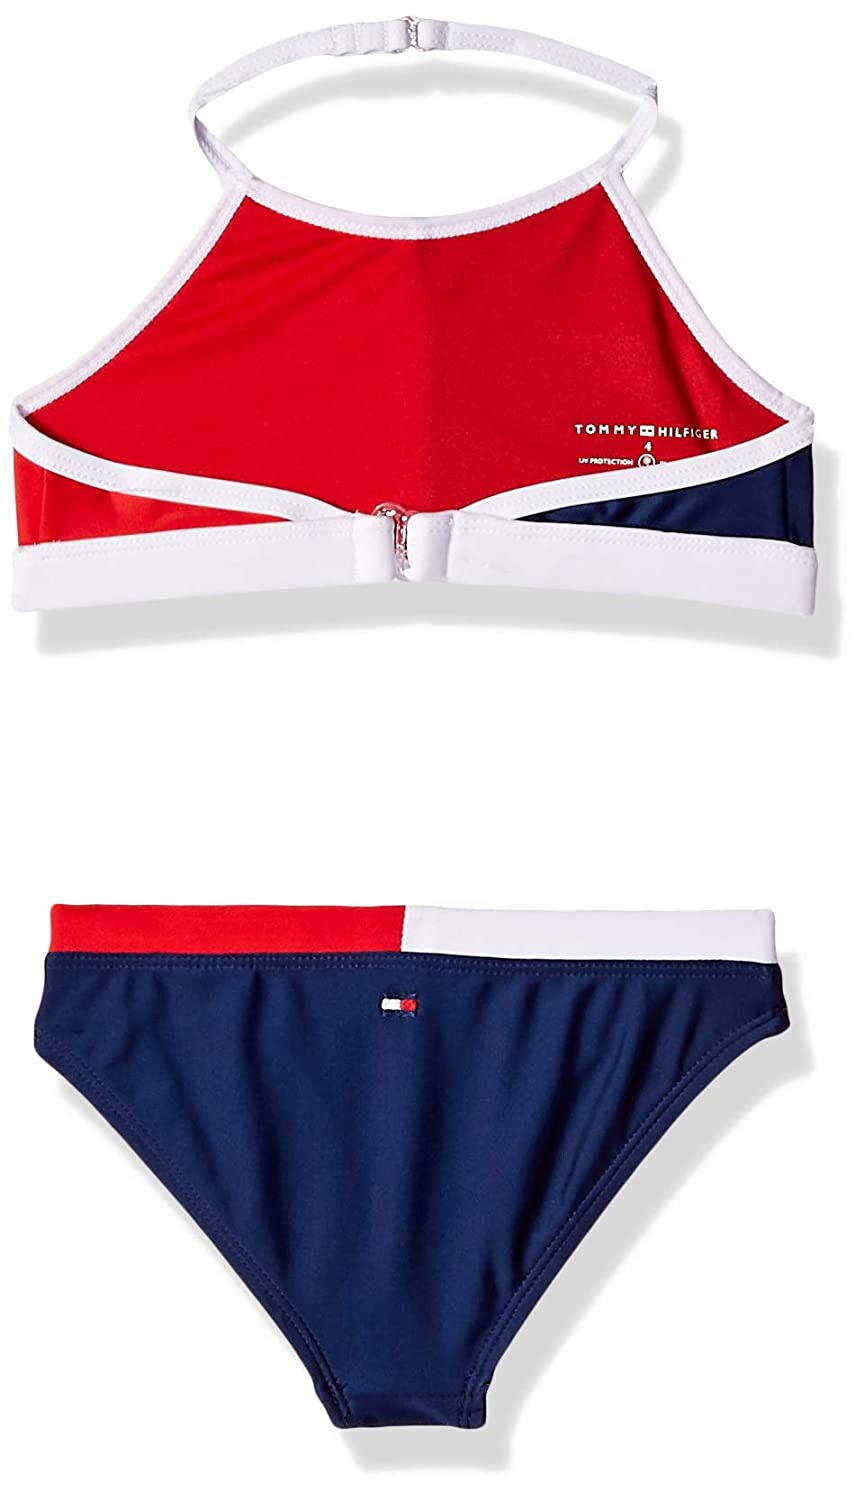 Tommy Hilfiger Girls Two-Piece Swimsuit